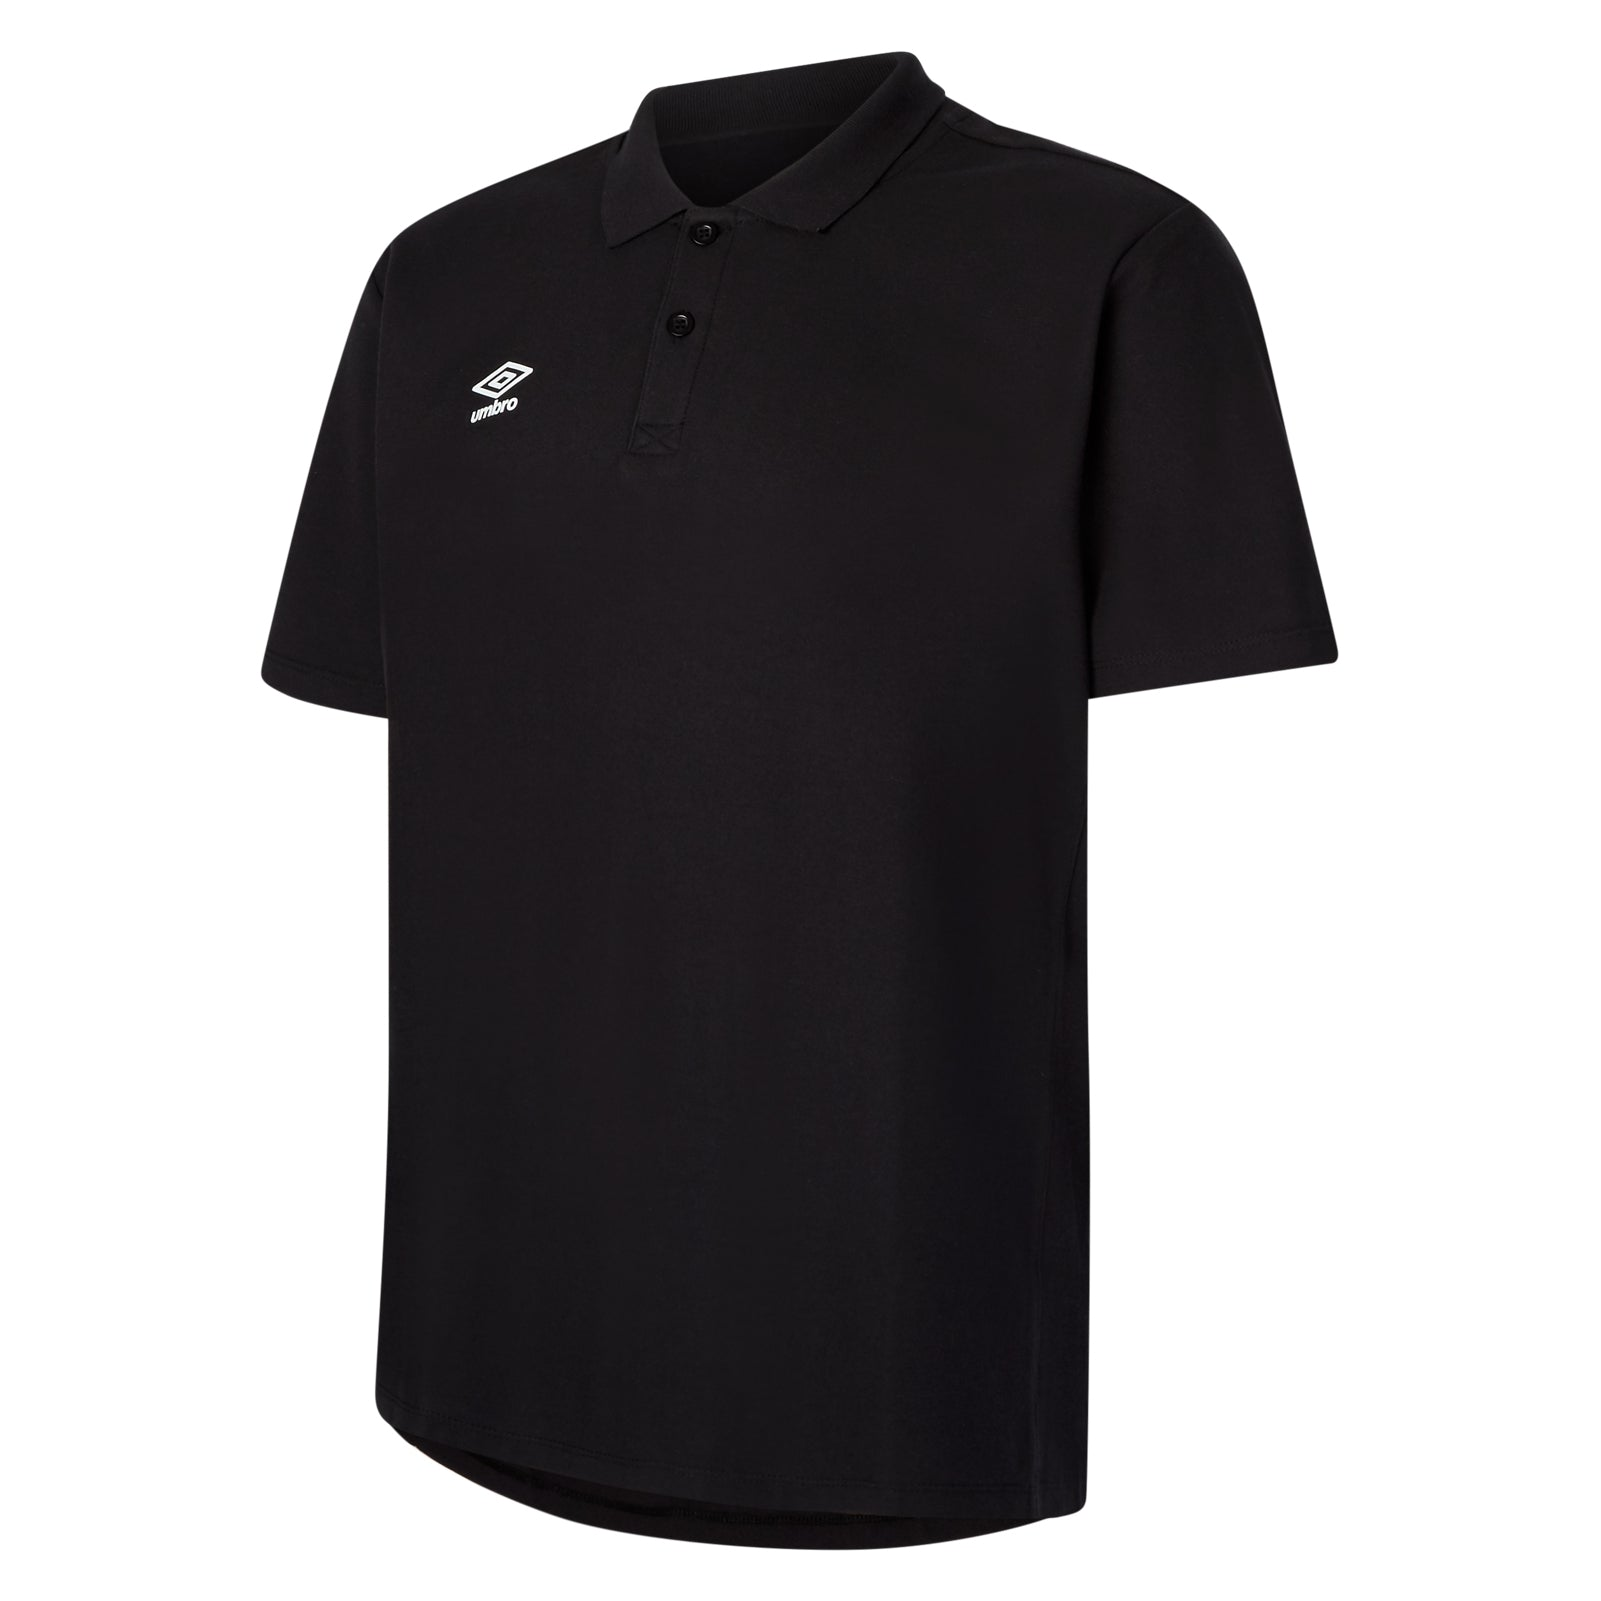 Umbro Club Essential Polo in black with white Umbro stacked Diamond logo on right chest